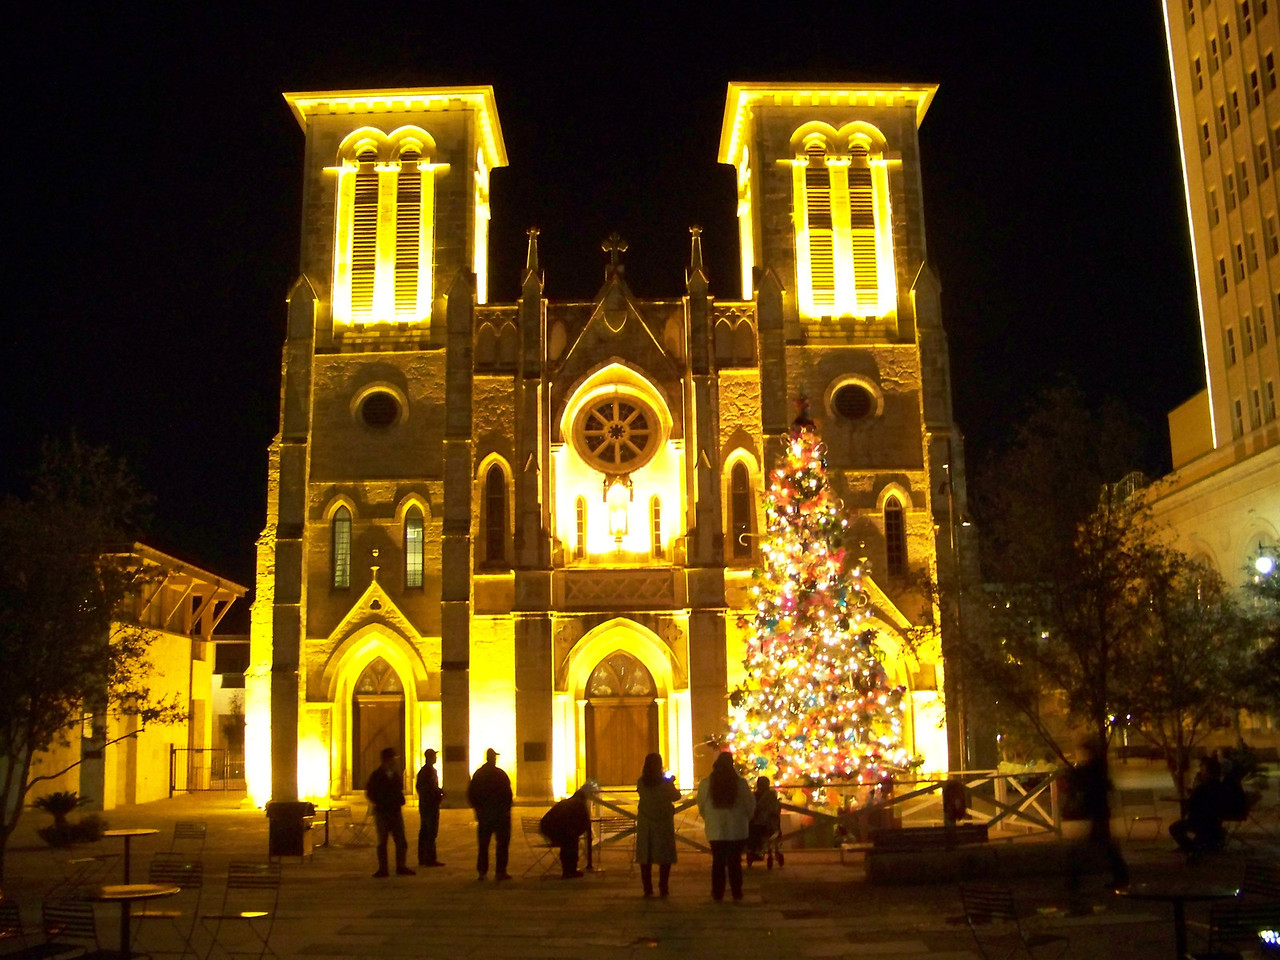 The historic San Fernando Cathedral is on another side of Main Plaza in San Antonio.